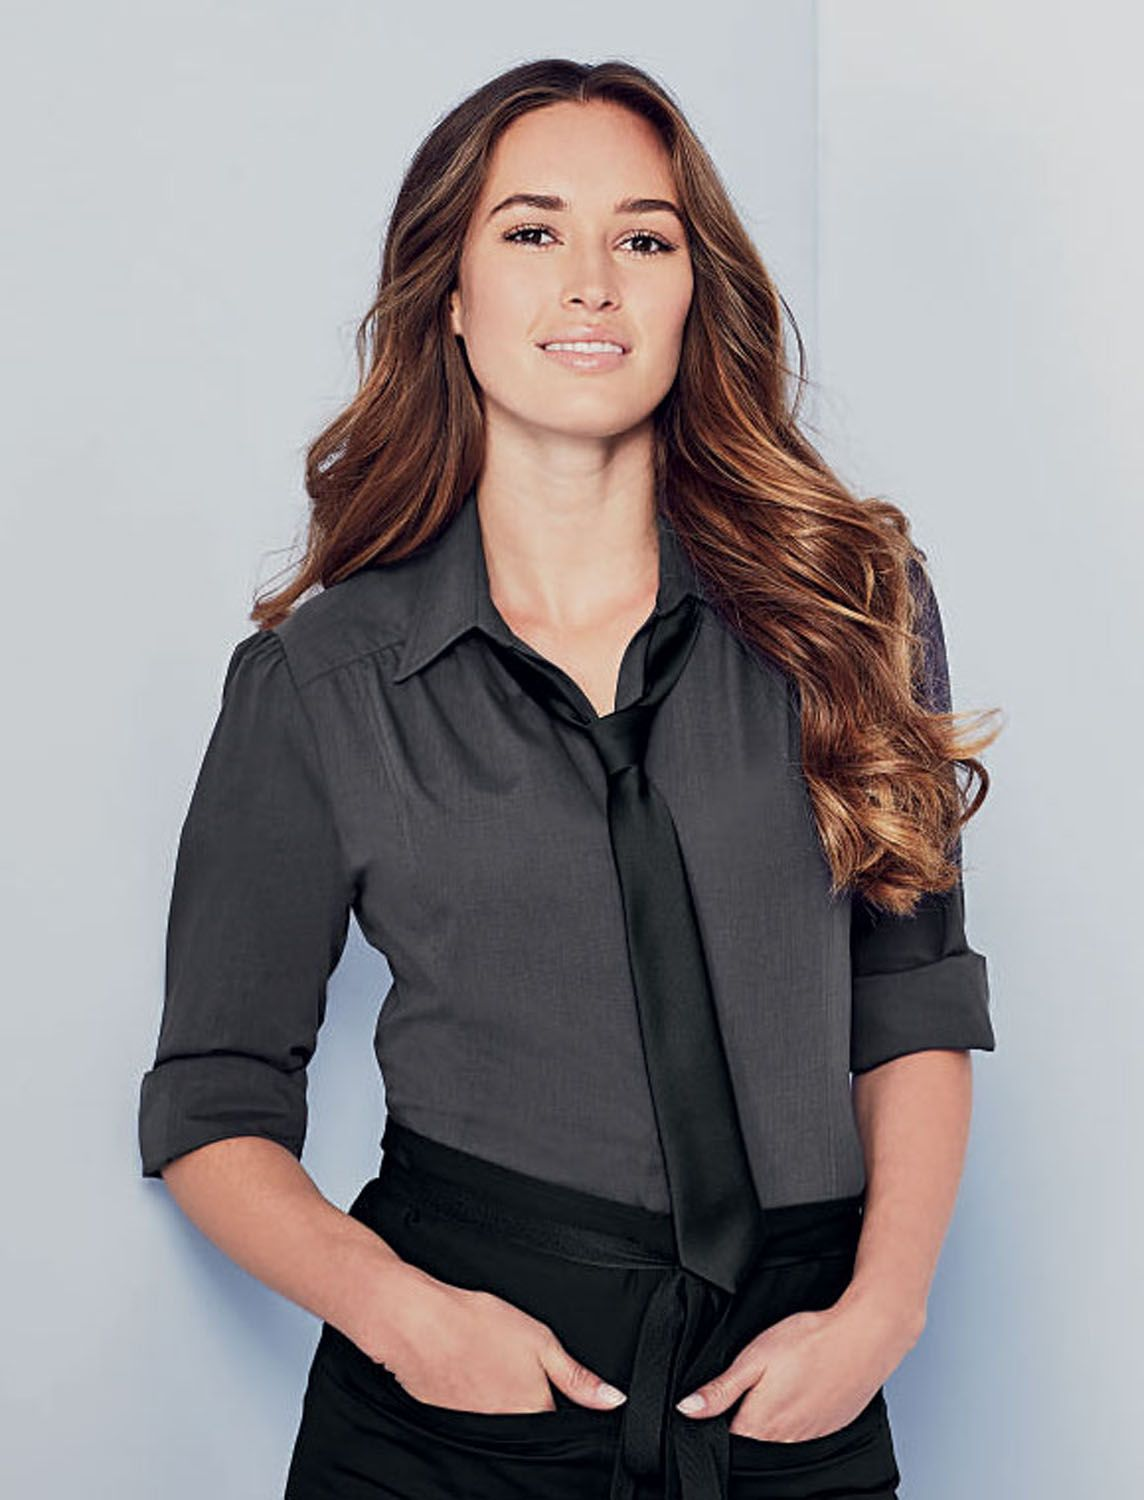 1e54844b0f8c0d Simon Jersey NEW chambray blouse £19.79, stylish, smart and durable perfect  for many job roles // Waitress blouse, hospitality uniform, grey blouse, ...